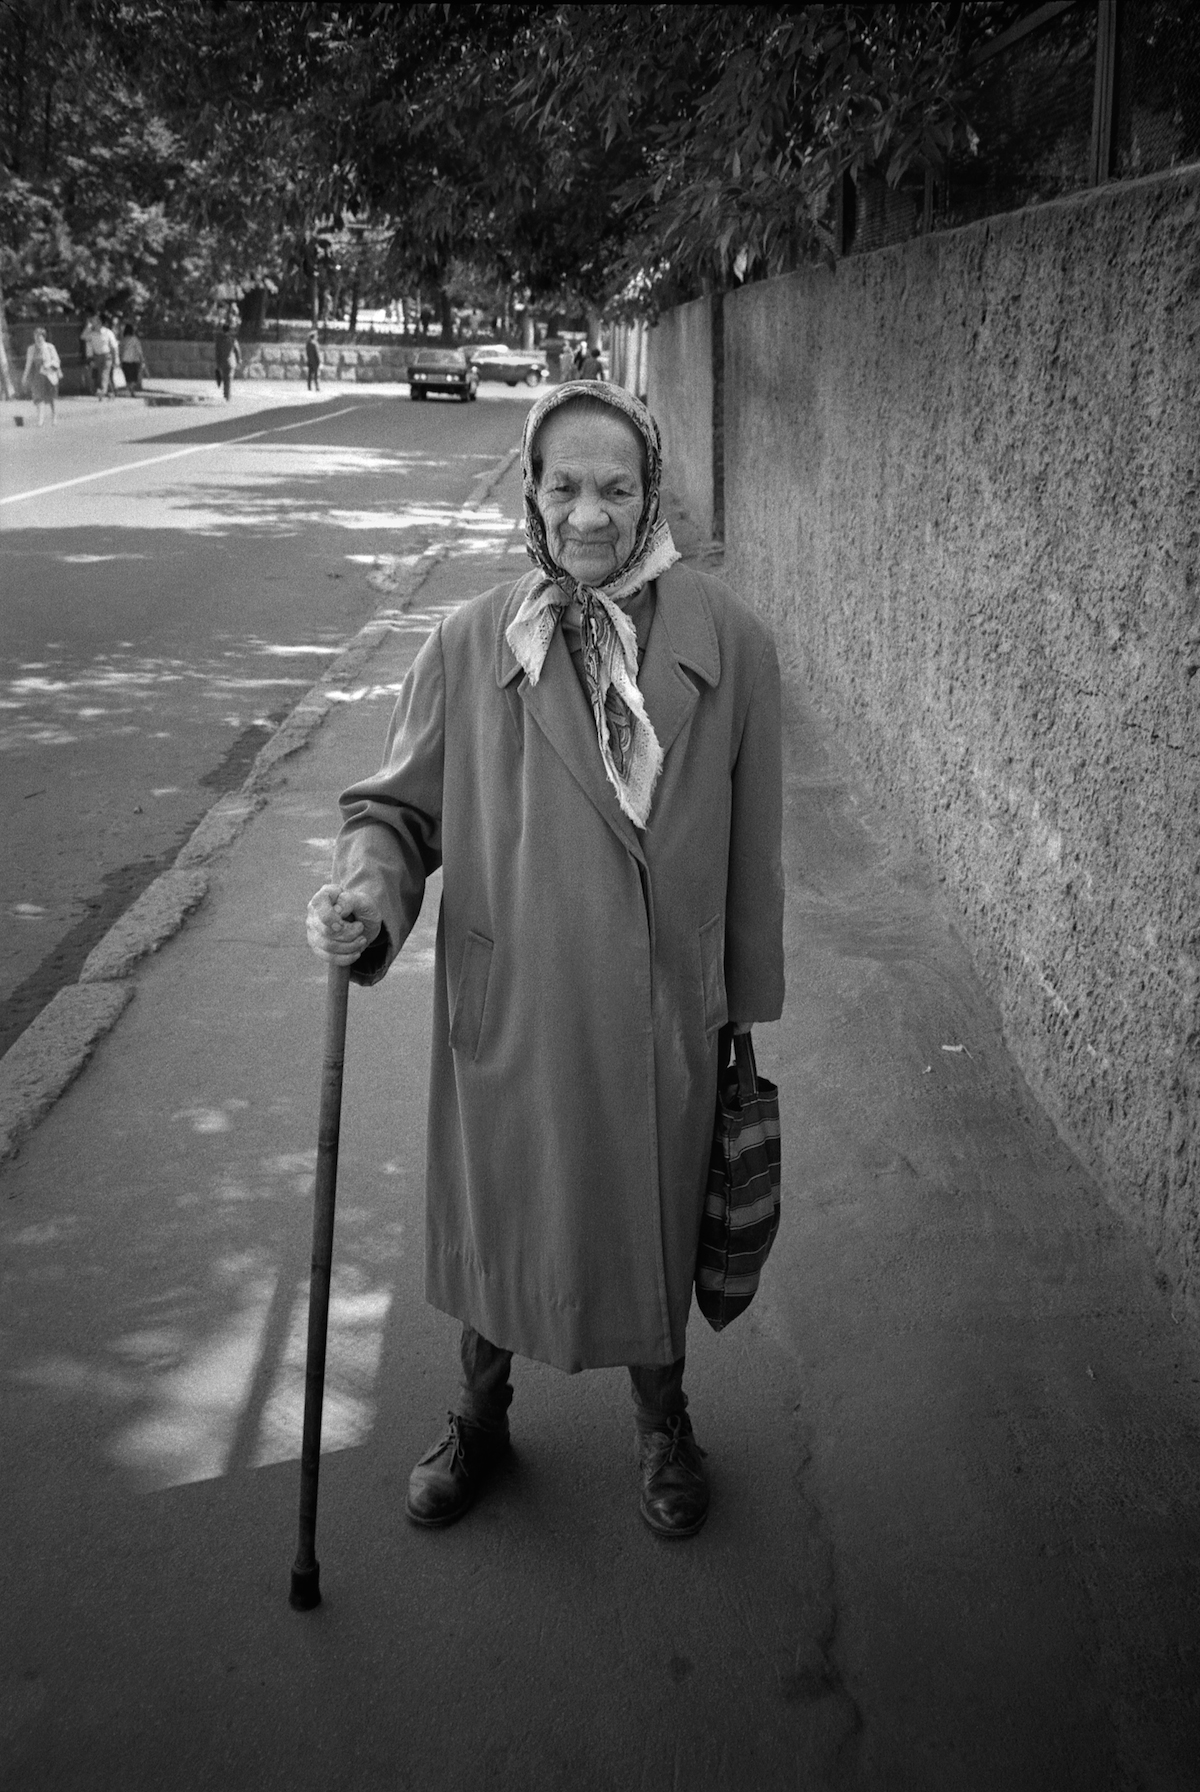 023-MOSCOW-Pensioner-in-a-Moscow-Street-RGC-SMALL.jpg